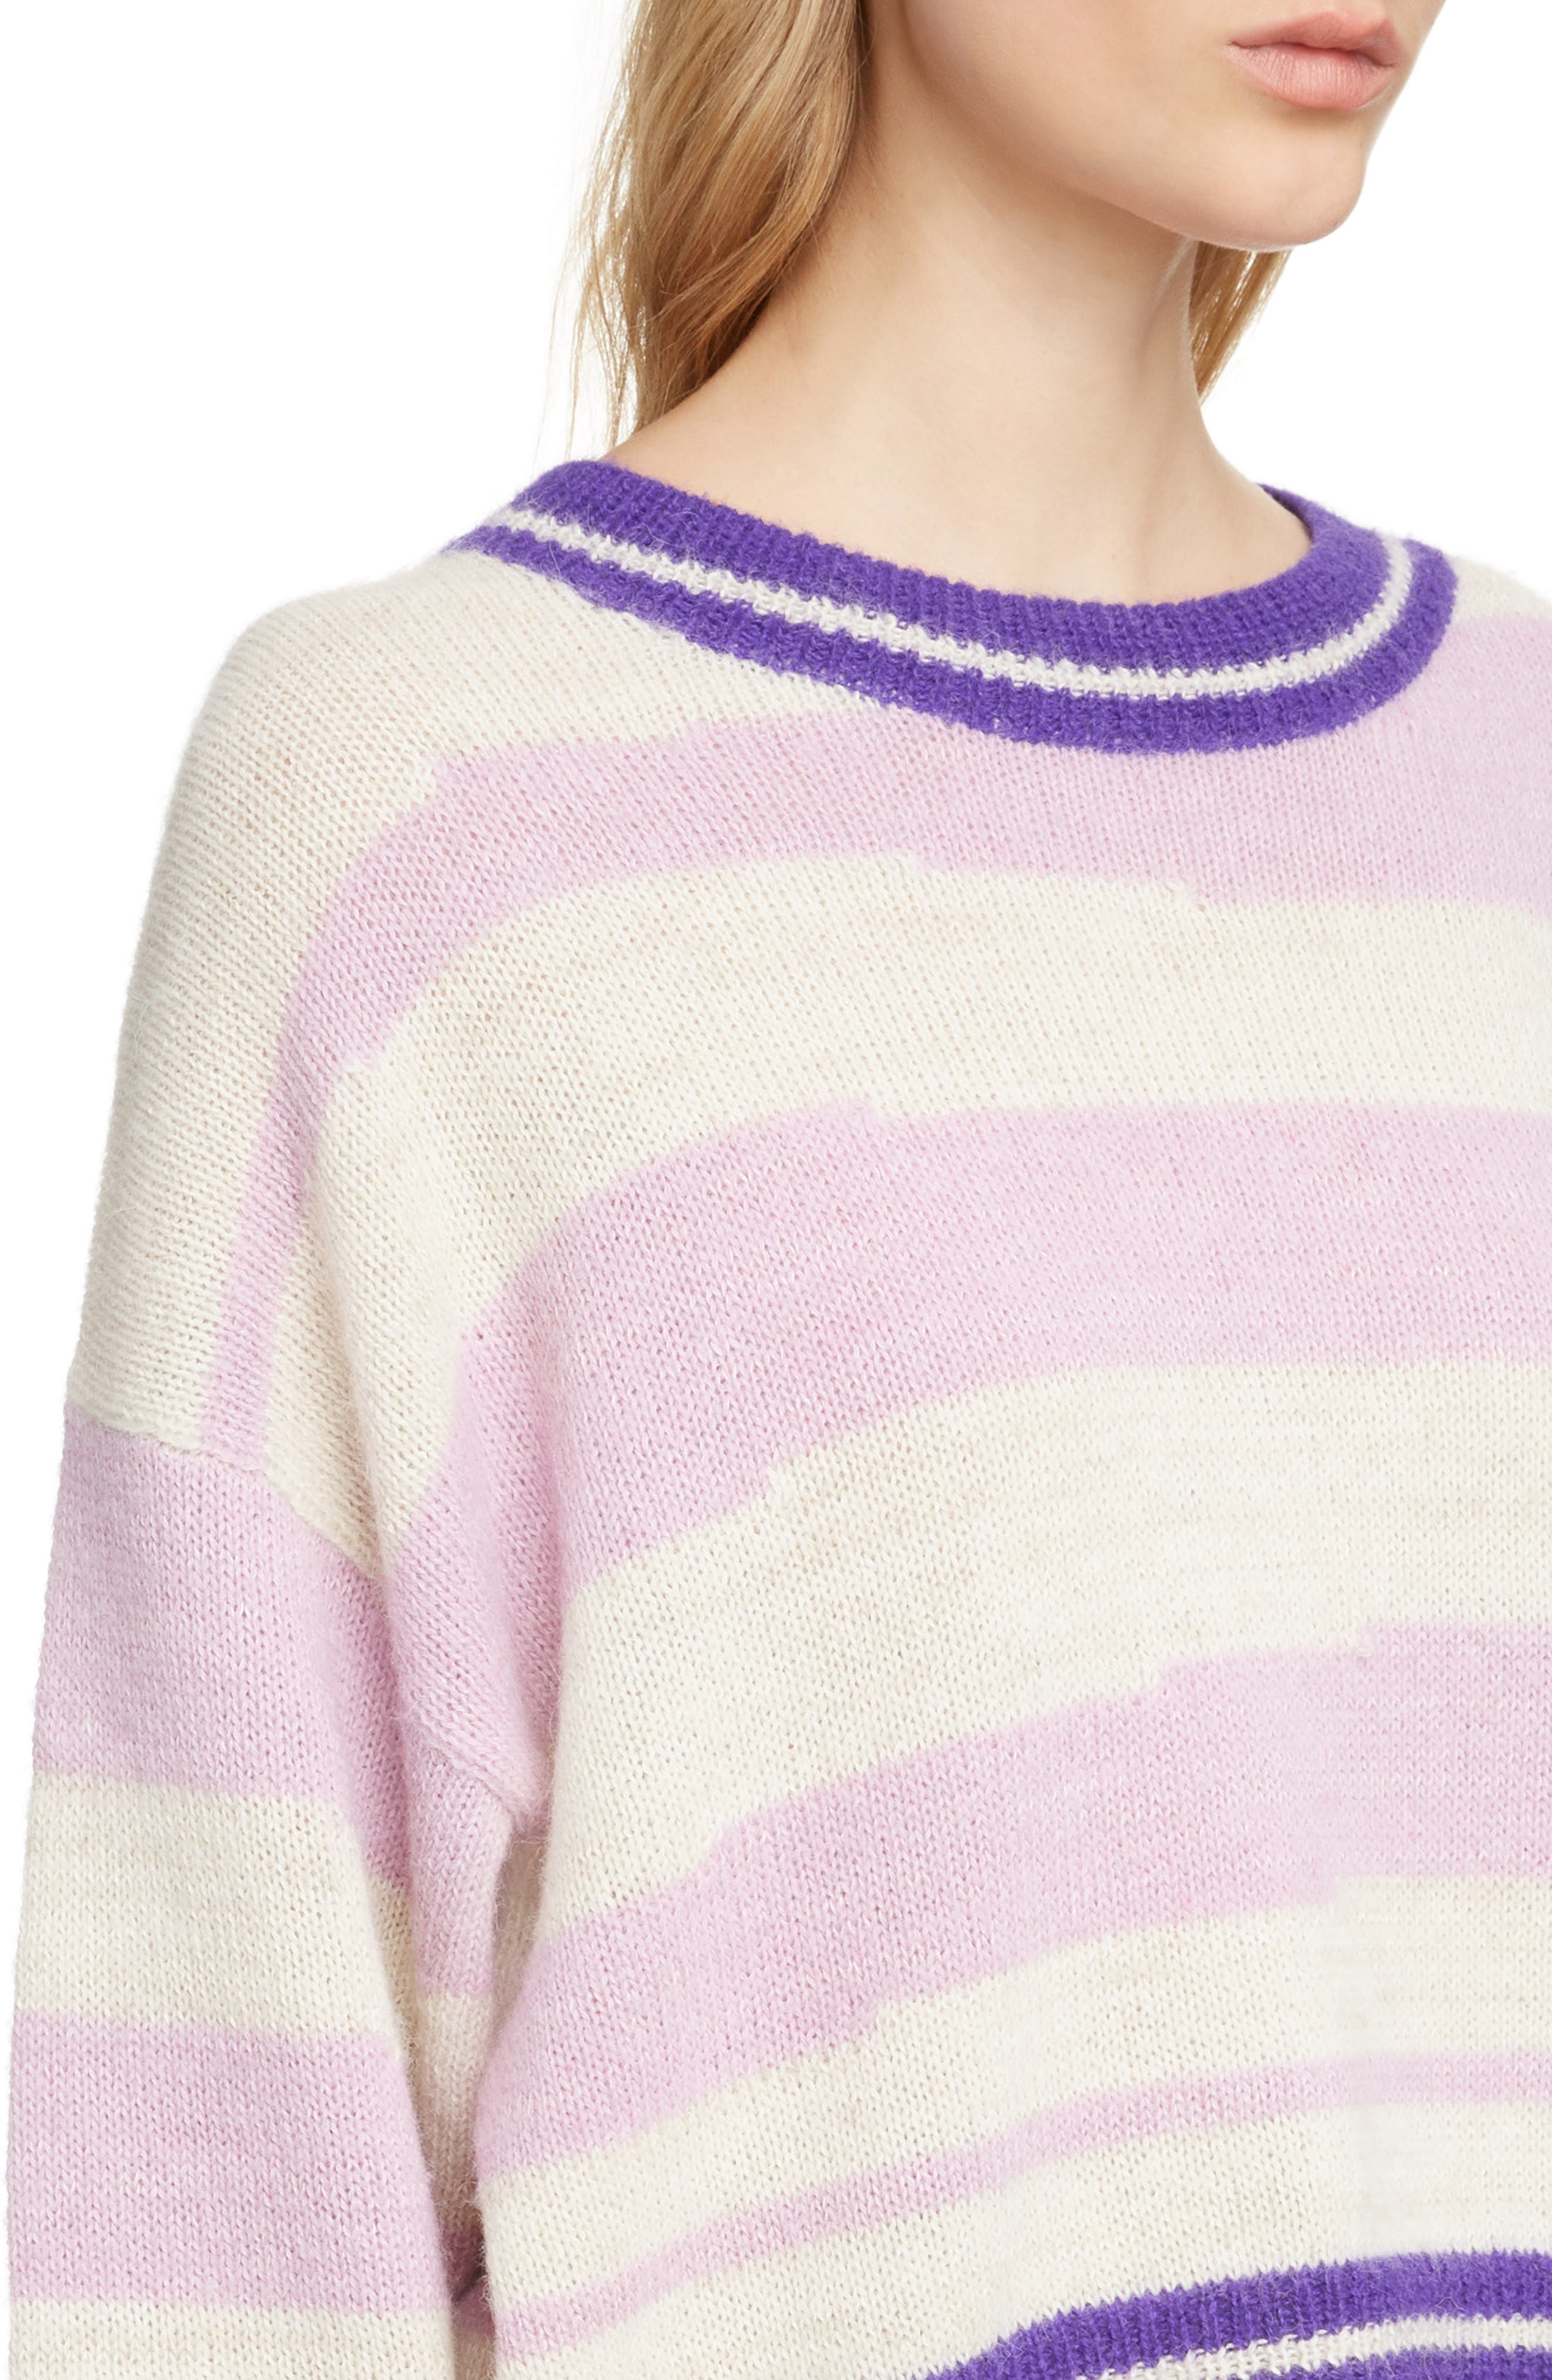 Glowy Stripe Sweater,                             Alternate thumbnail 4, color,                             LILAC